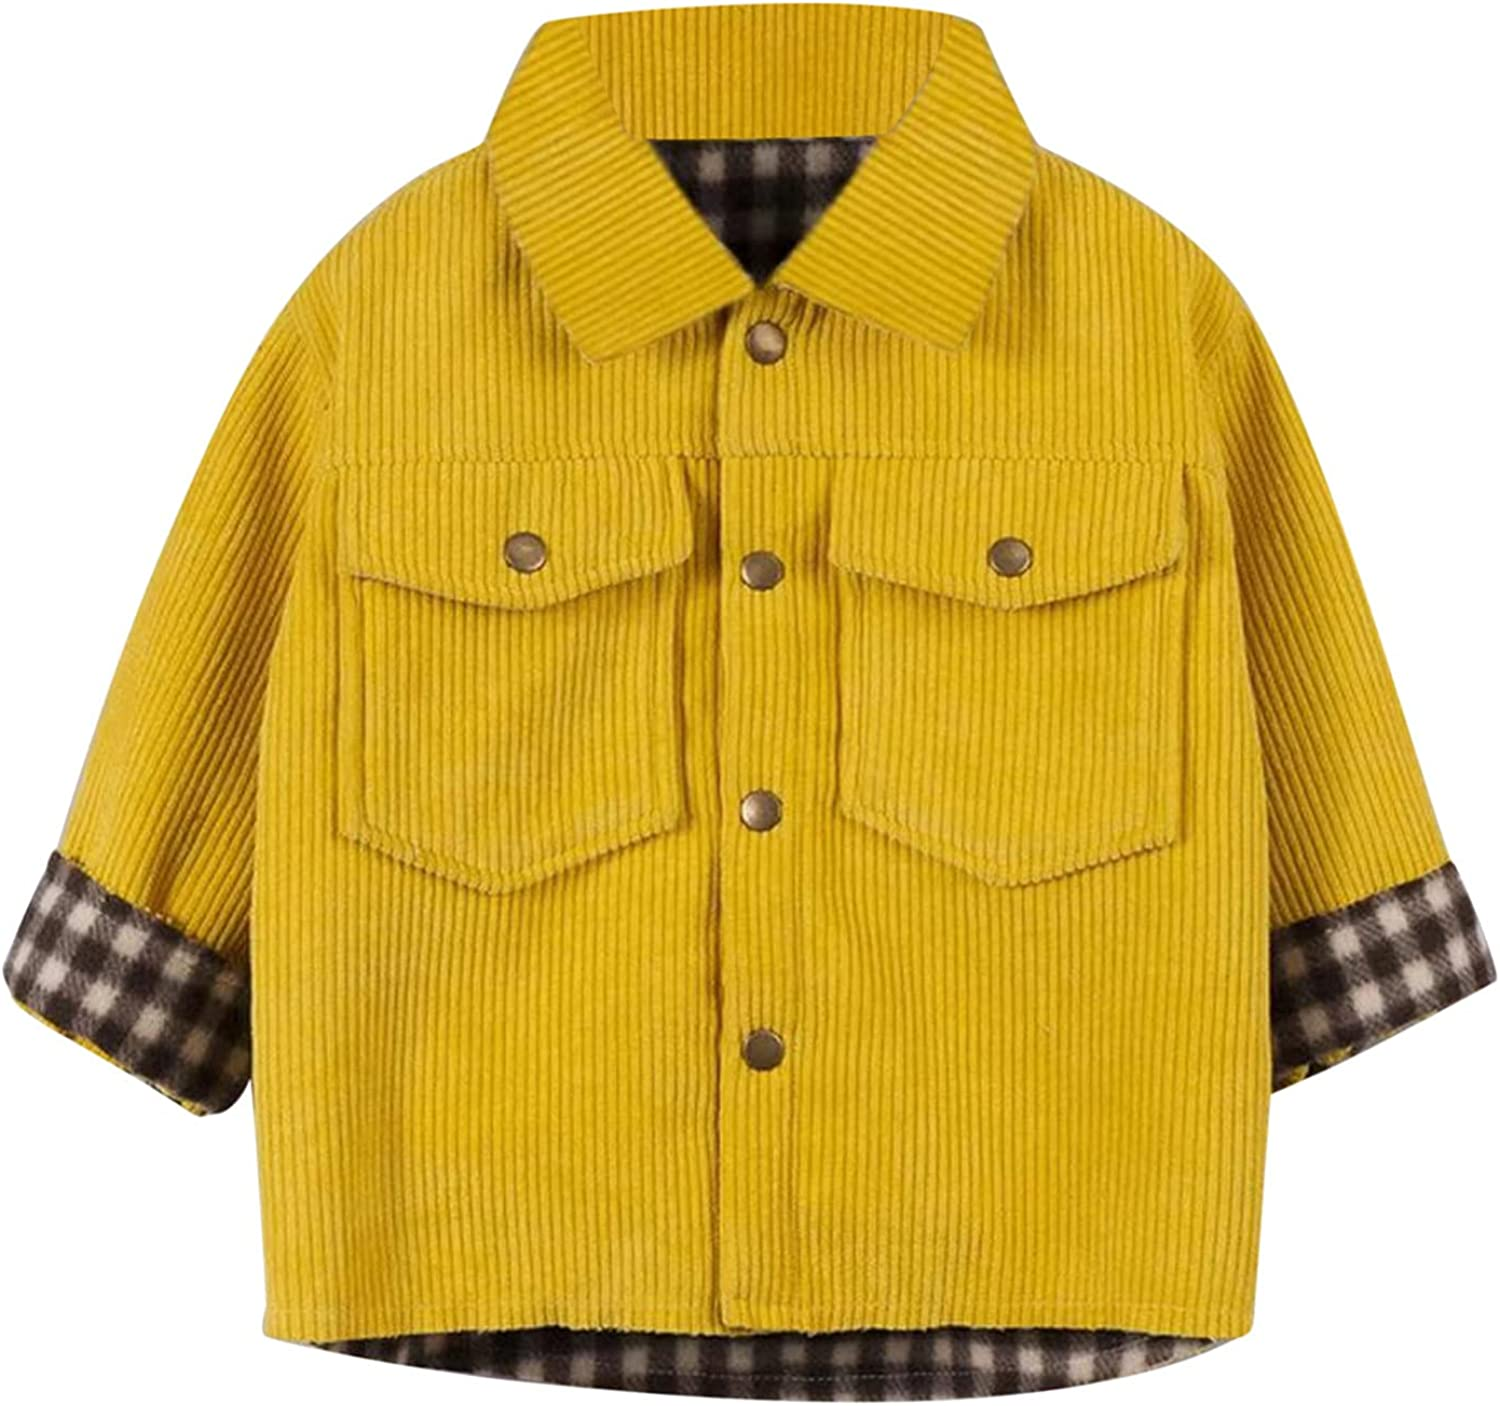 Brand new KONF Free Shipping Cheap Bargain Gift Infant Baby Warm Jacket Hooded Outwear Plaid Boys Girls But